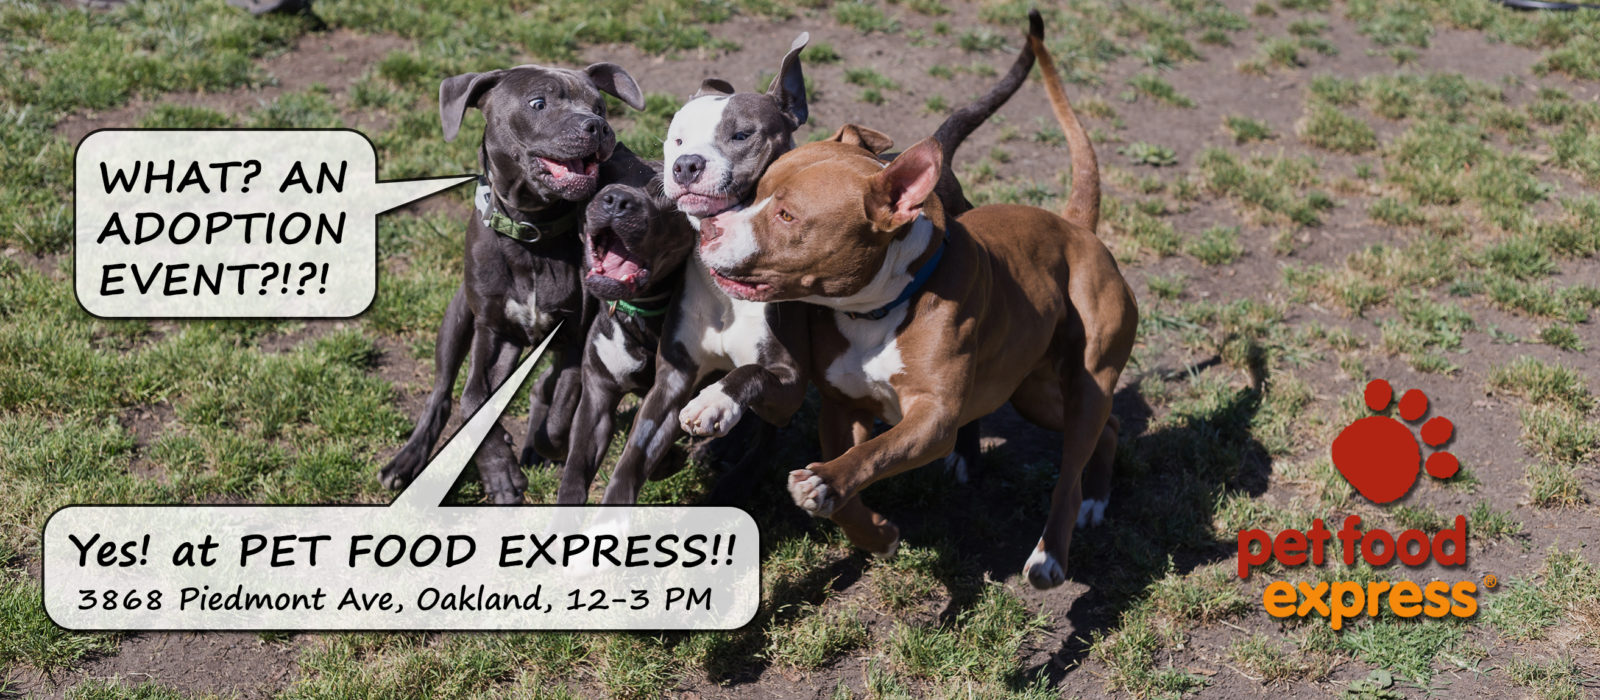 Pet Food Express Adoption Event